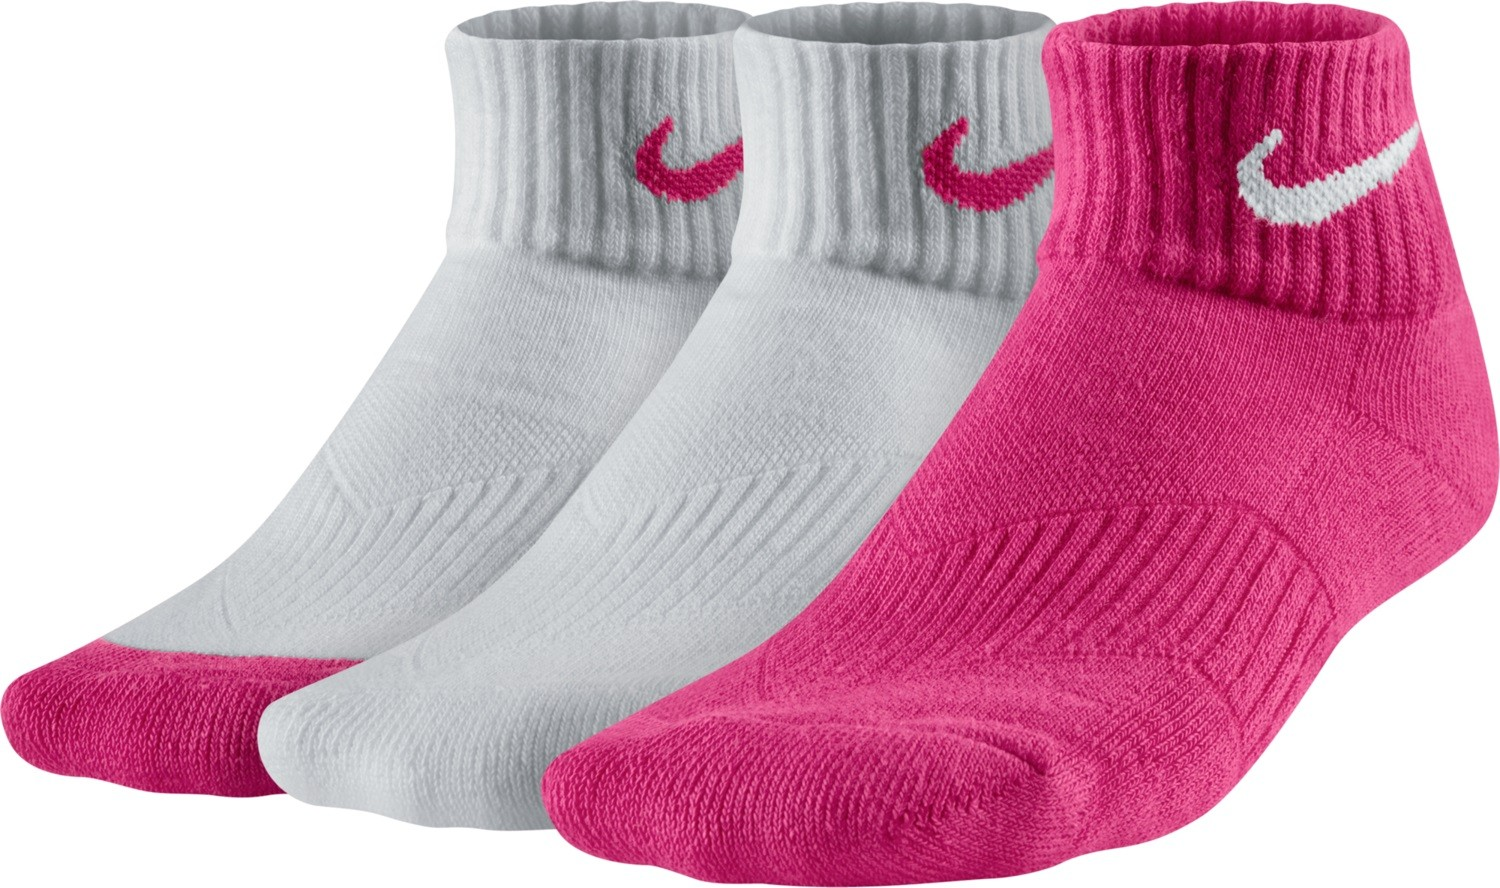 nike kinder performance socken rosa. Black Bedroom Furniture Sets. Home Design Ideas